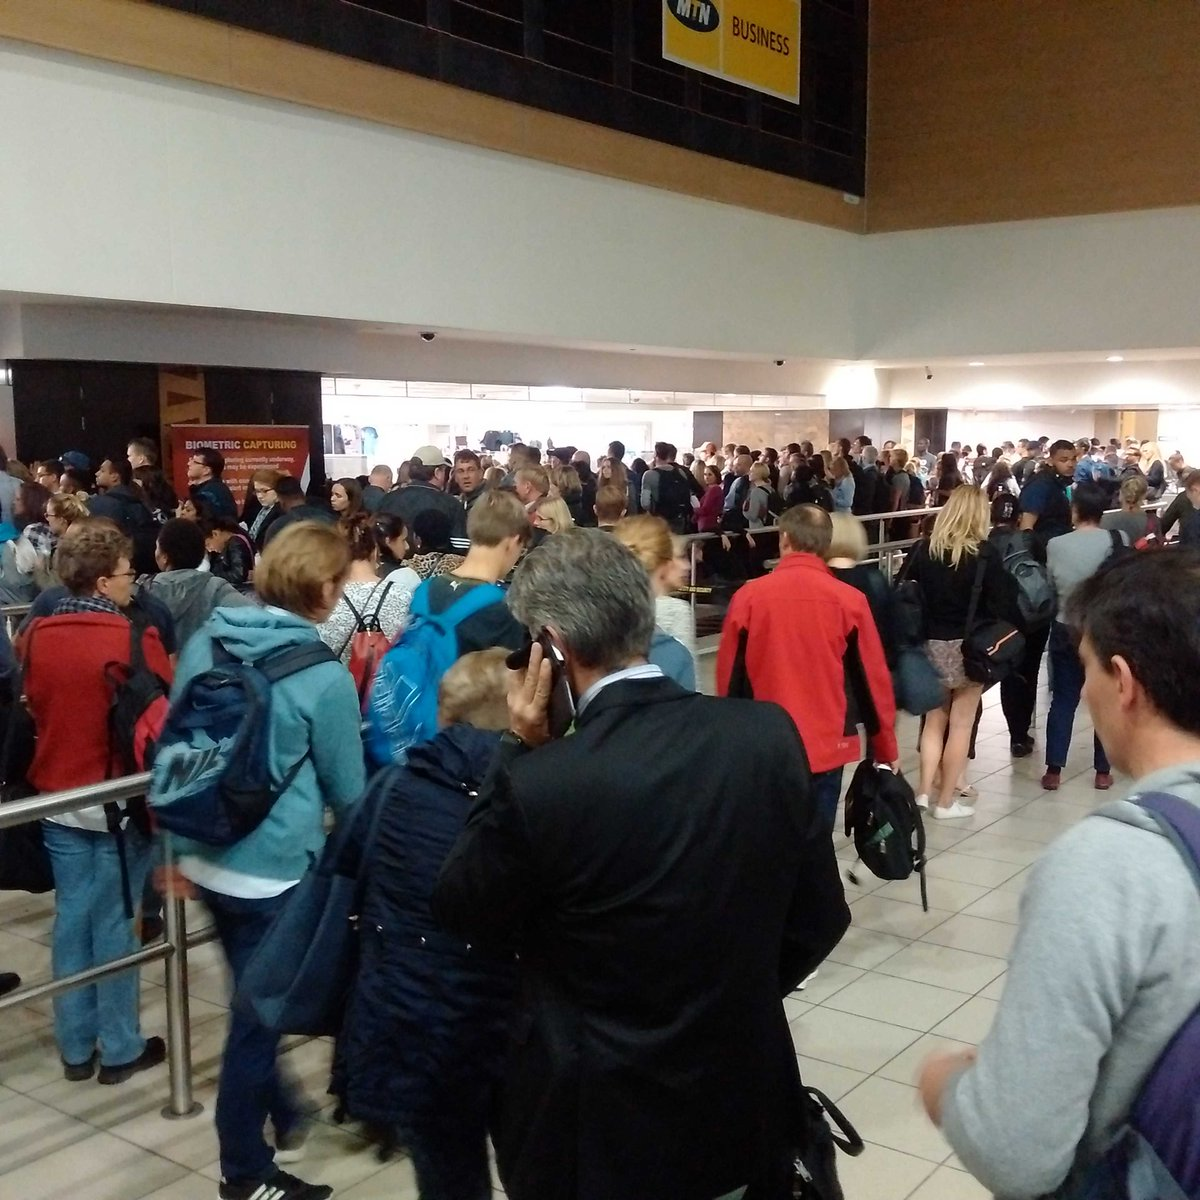 Unprecedented chaos at the ORT passport control. Most of these people will miss their flights. https://t.co/24iJycOn4x